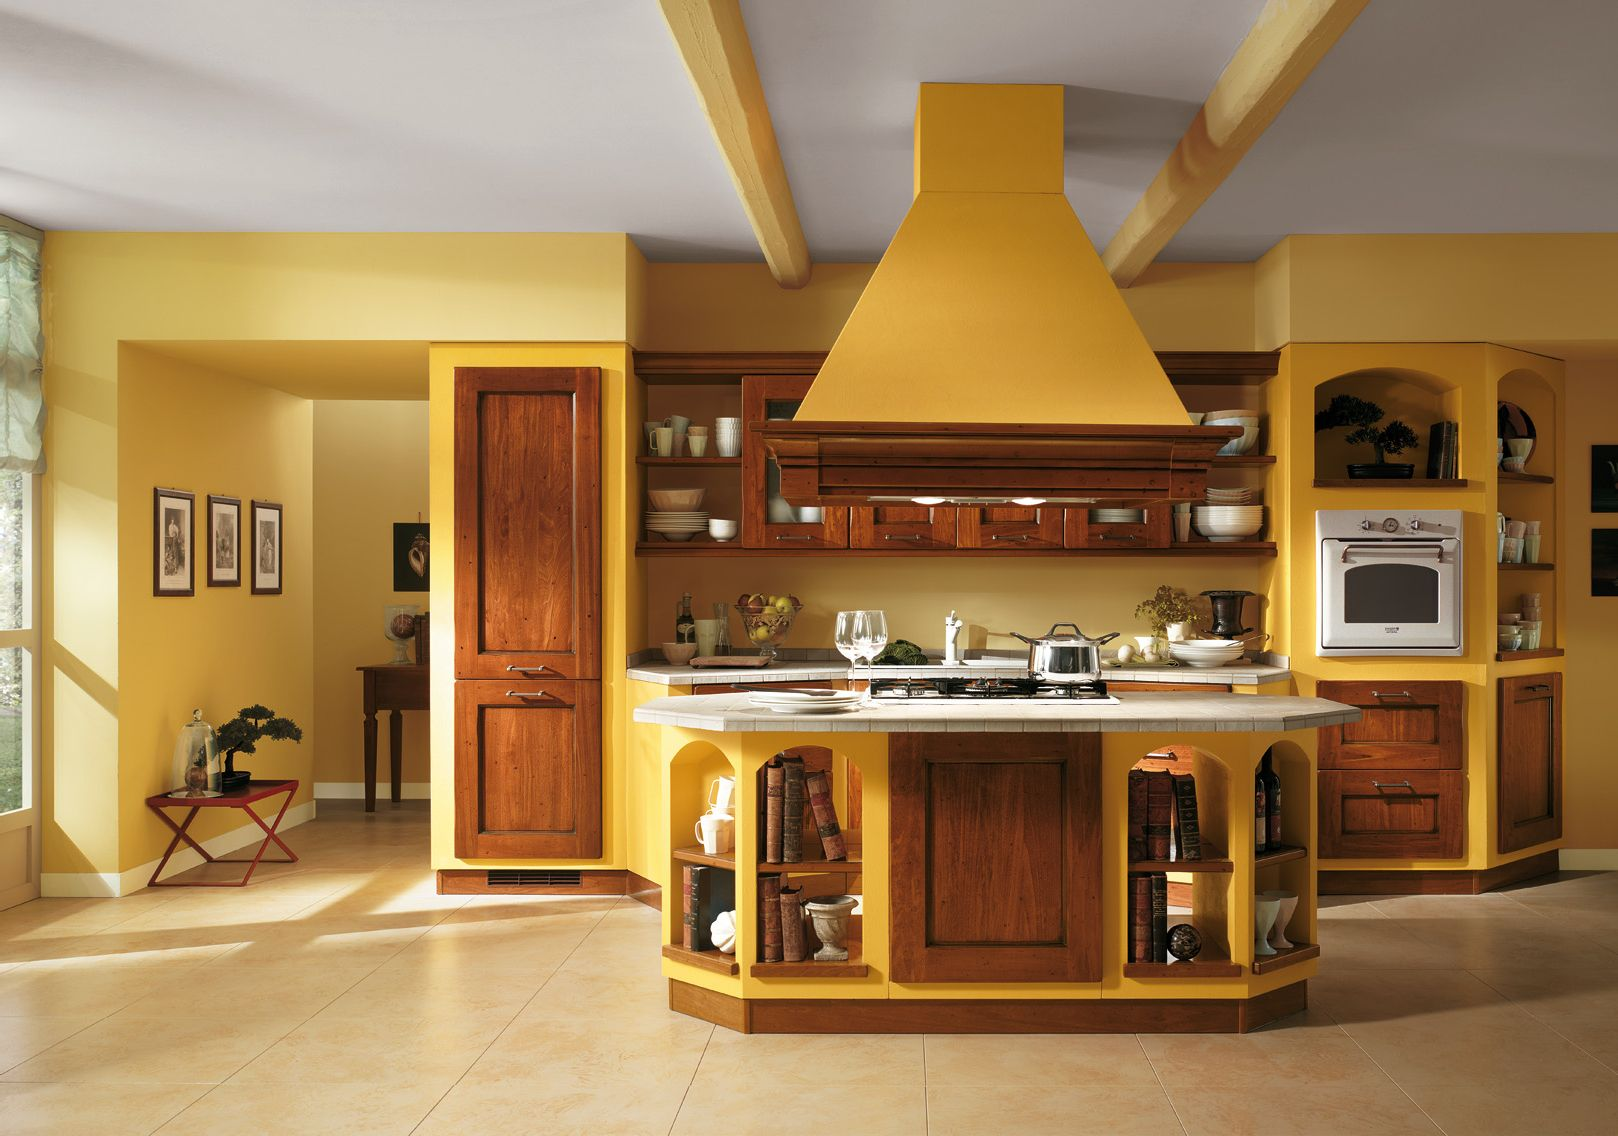 Color For Kitchen Italian Kitchen Color Schemes For Open Interior Design Big Chill